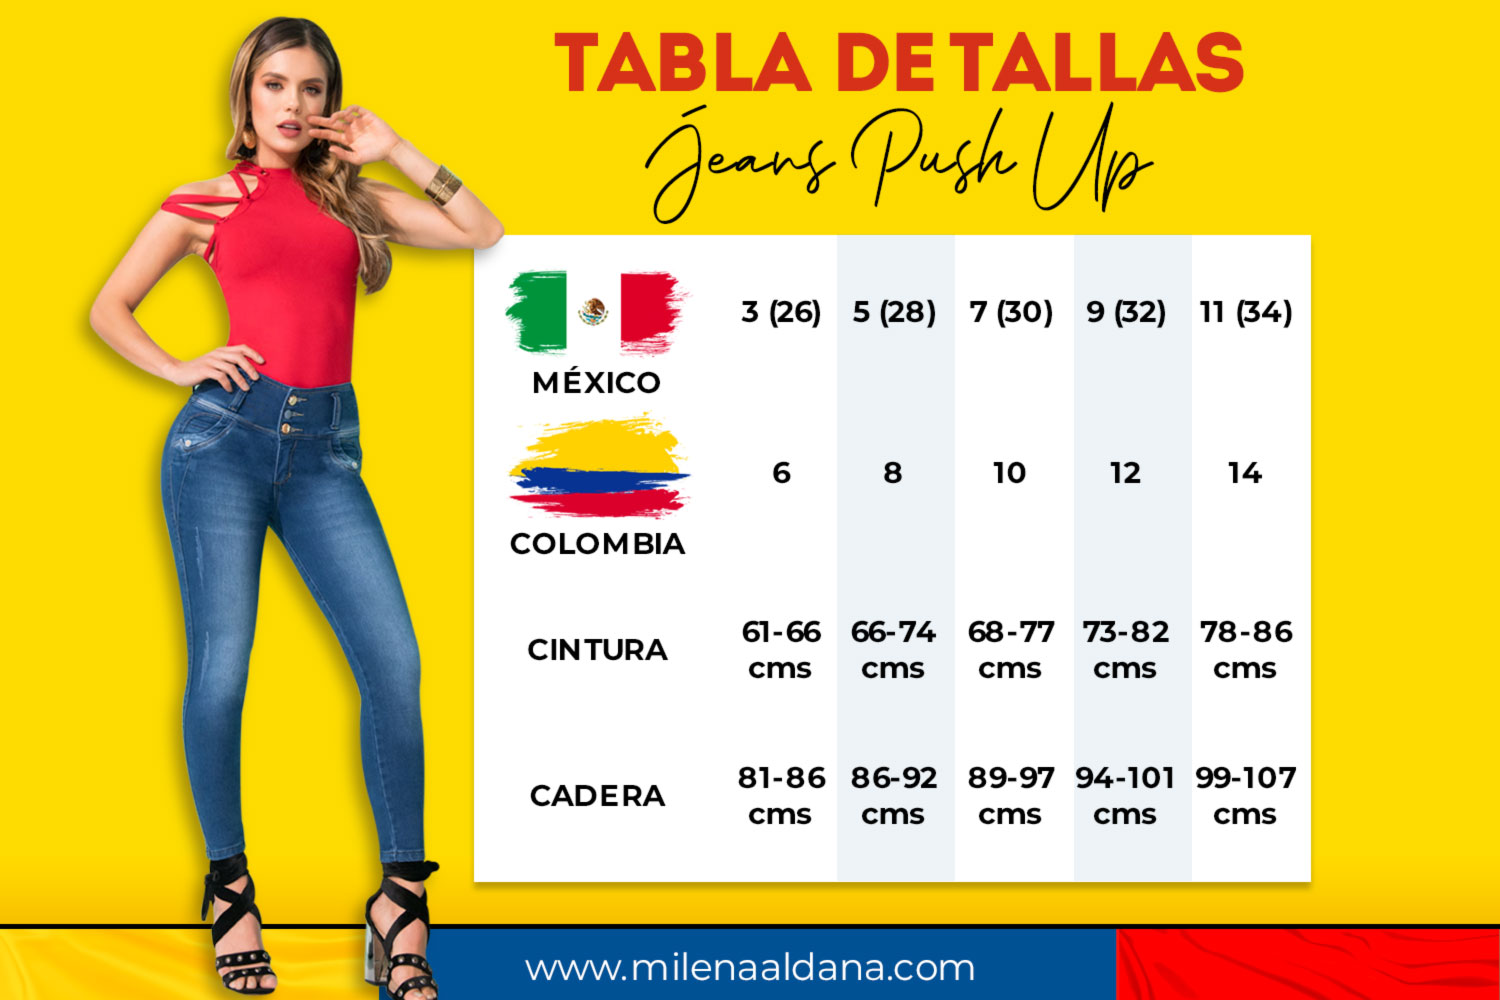 Tallas Jeans Push Up - Milena Aldana